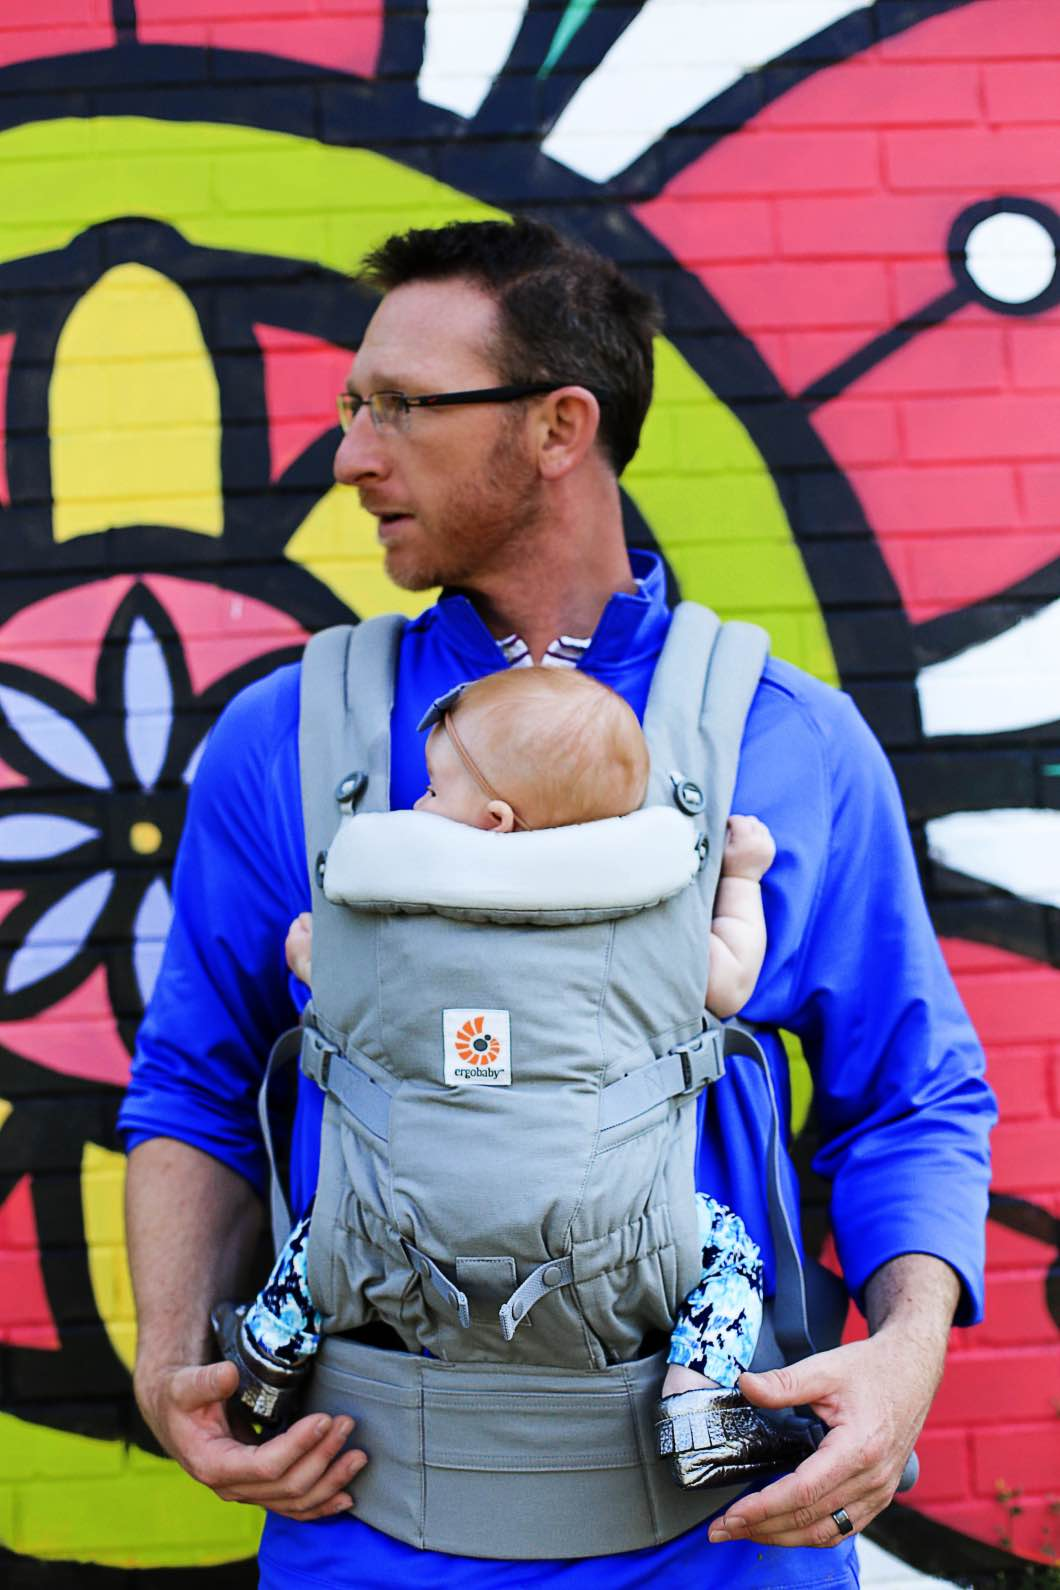 Ergobaby Adapt Carrier Happily Hughes